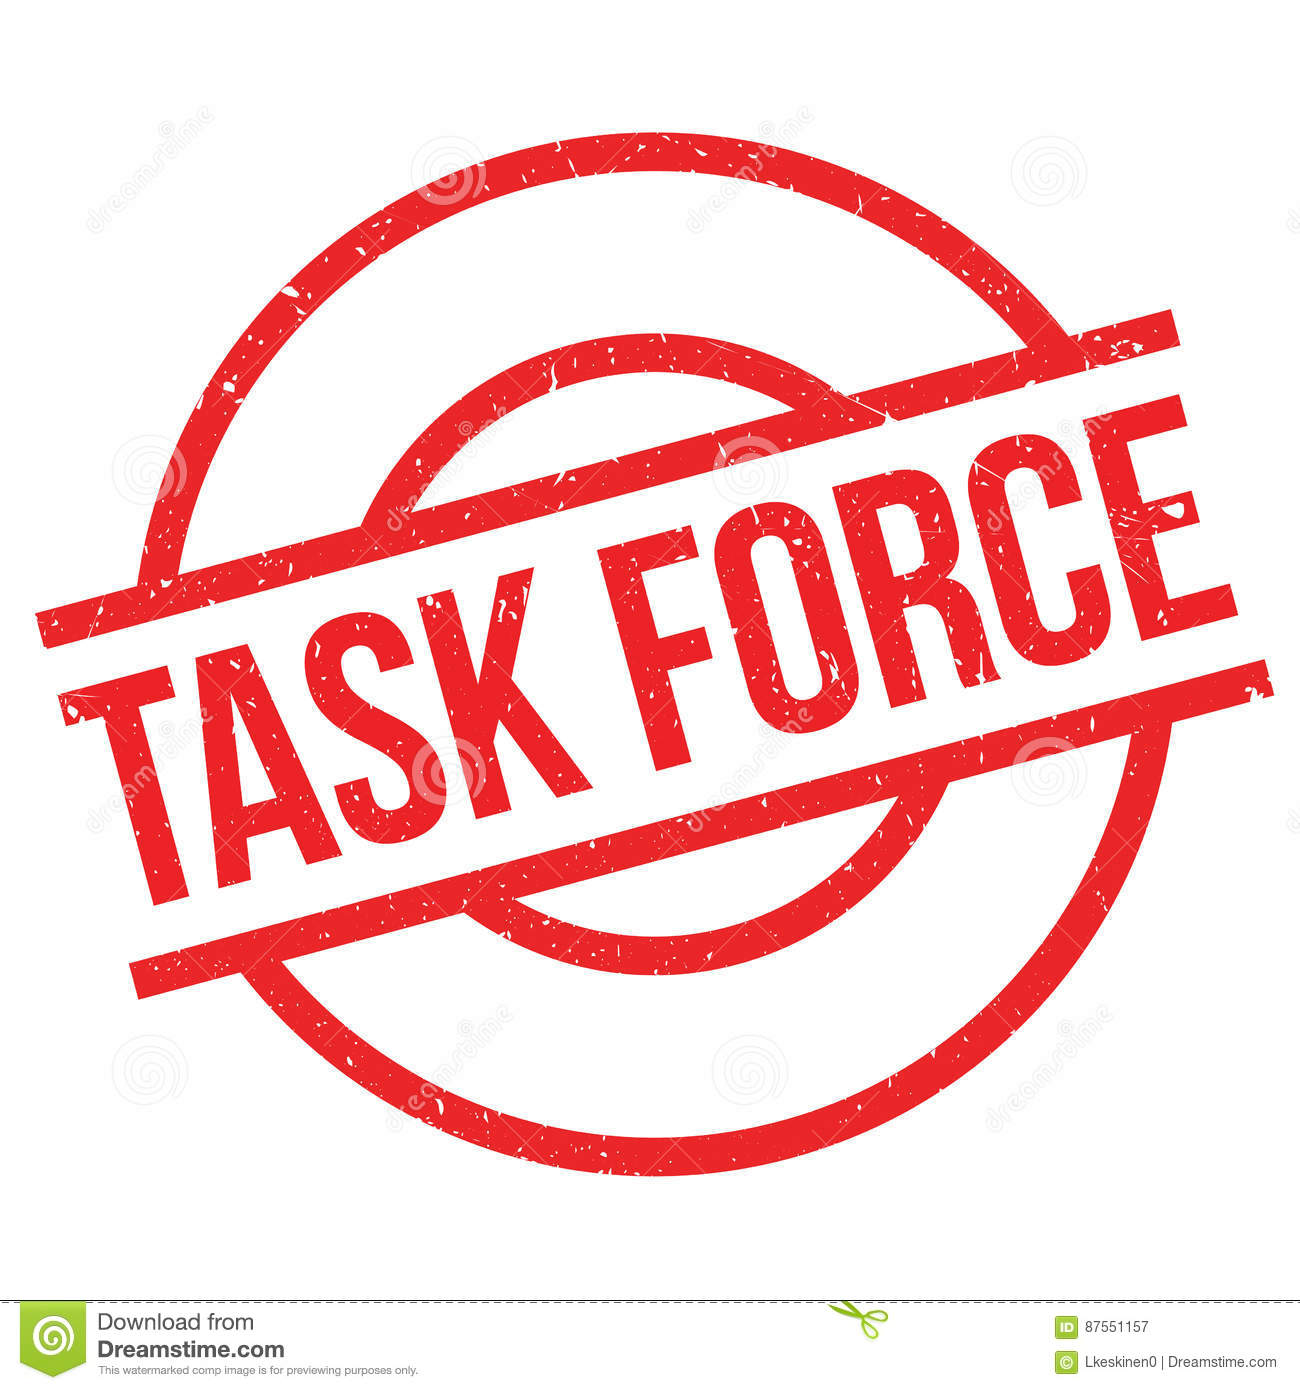 Task Force rubber stamp